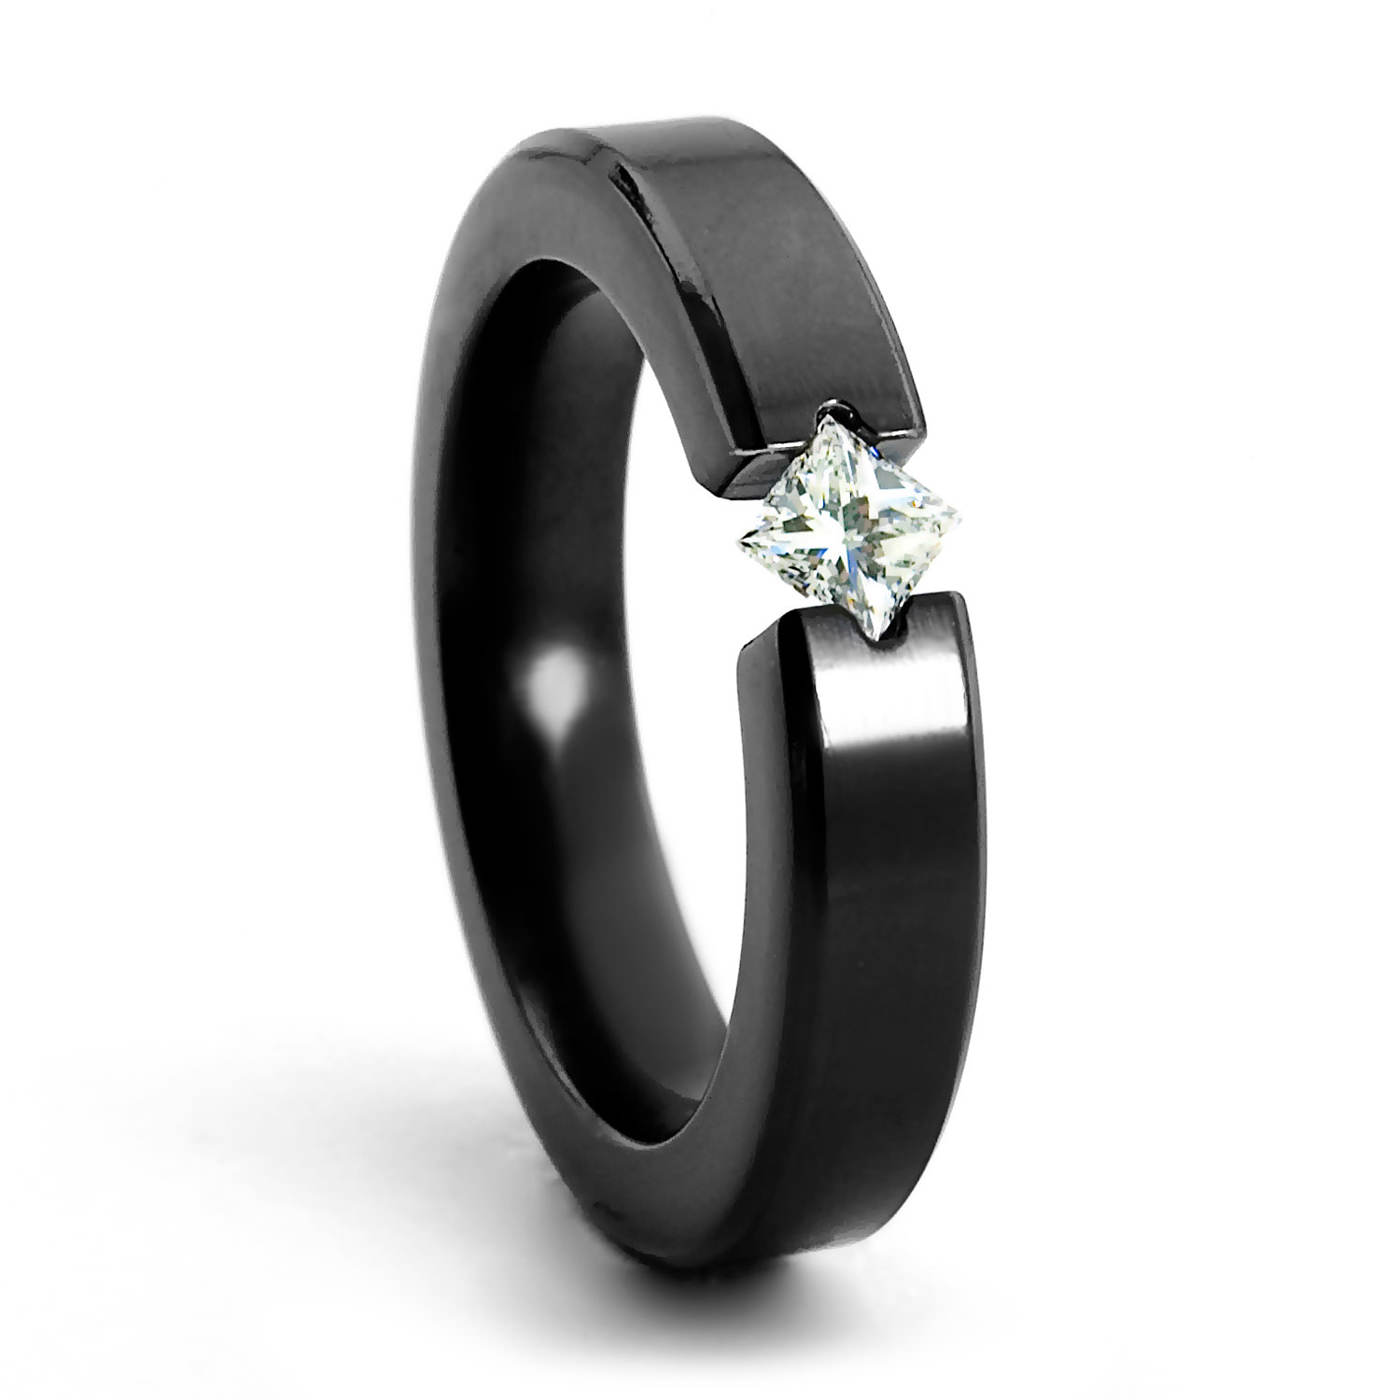 ceramic fit collections designs wedding band comfort satin style fashion ltd finished black rings domed g steven ring wide